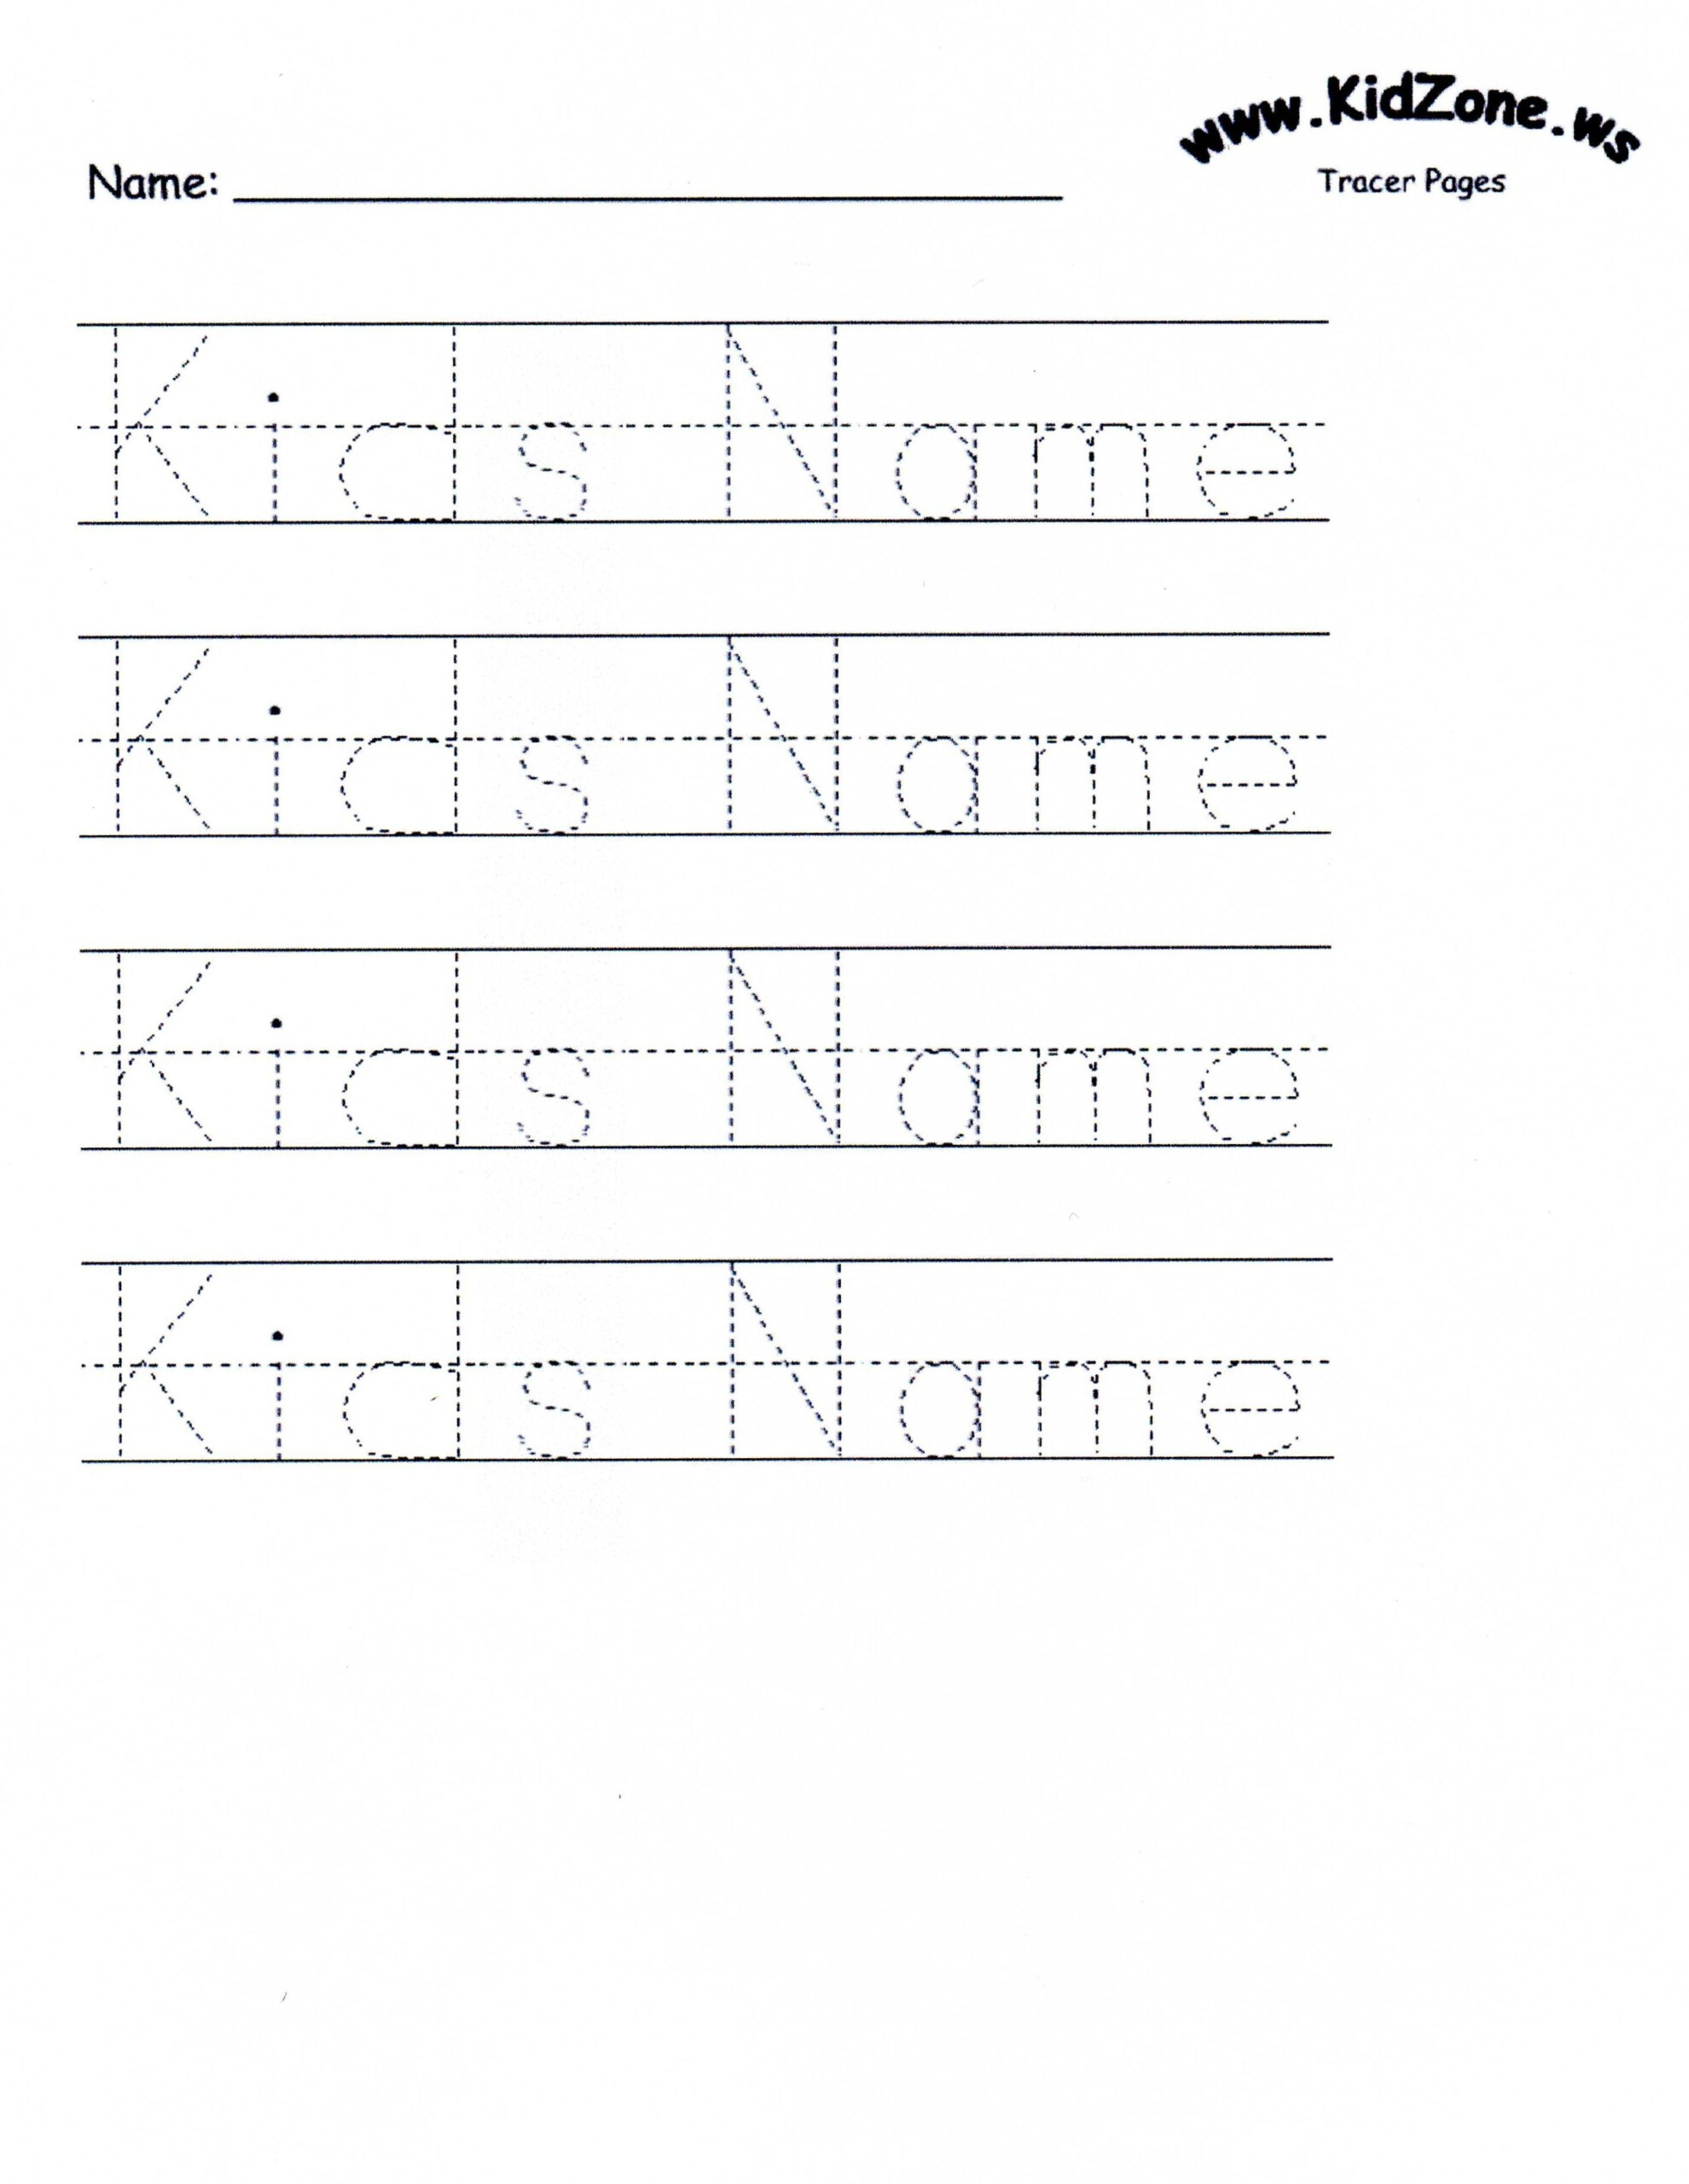 Customizable Printable Letter Pages | Name Tracing